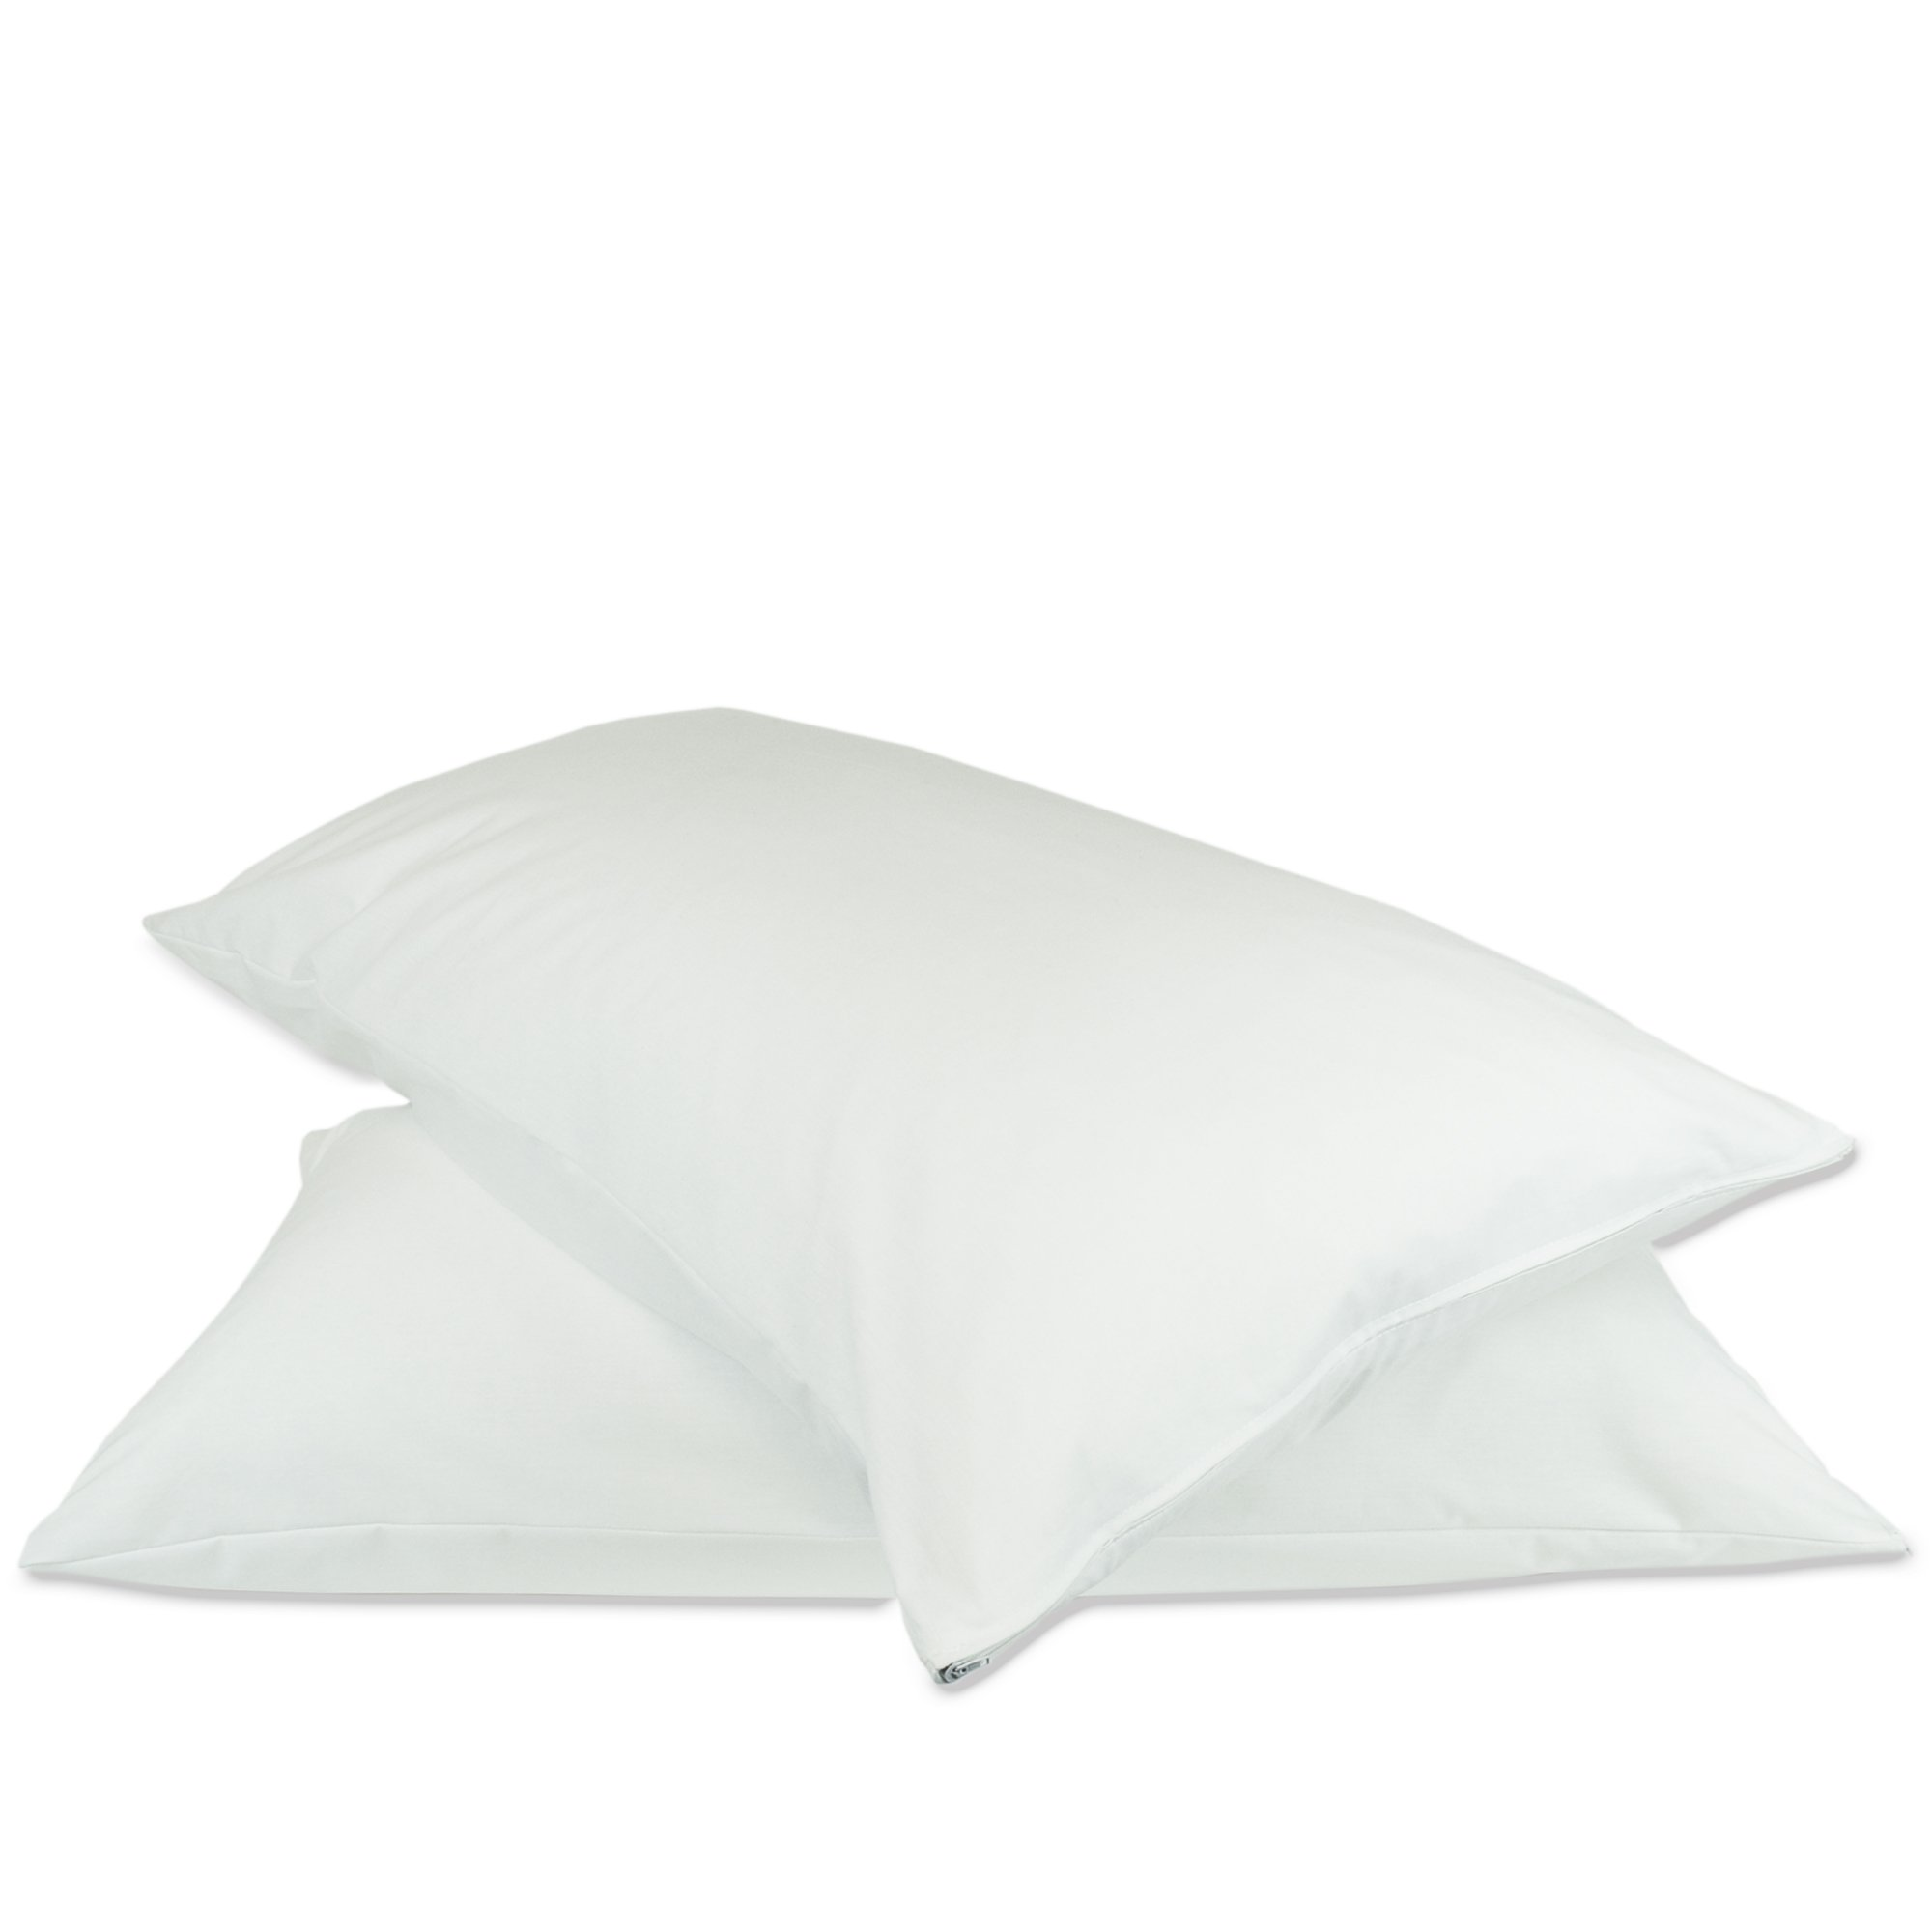 BC BARE COTTON Luxury Hotel Collection Plain Pillow Protectors - Zipper - King Size - White - Set of 2